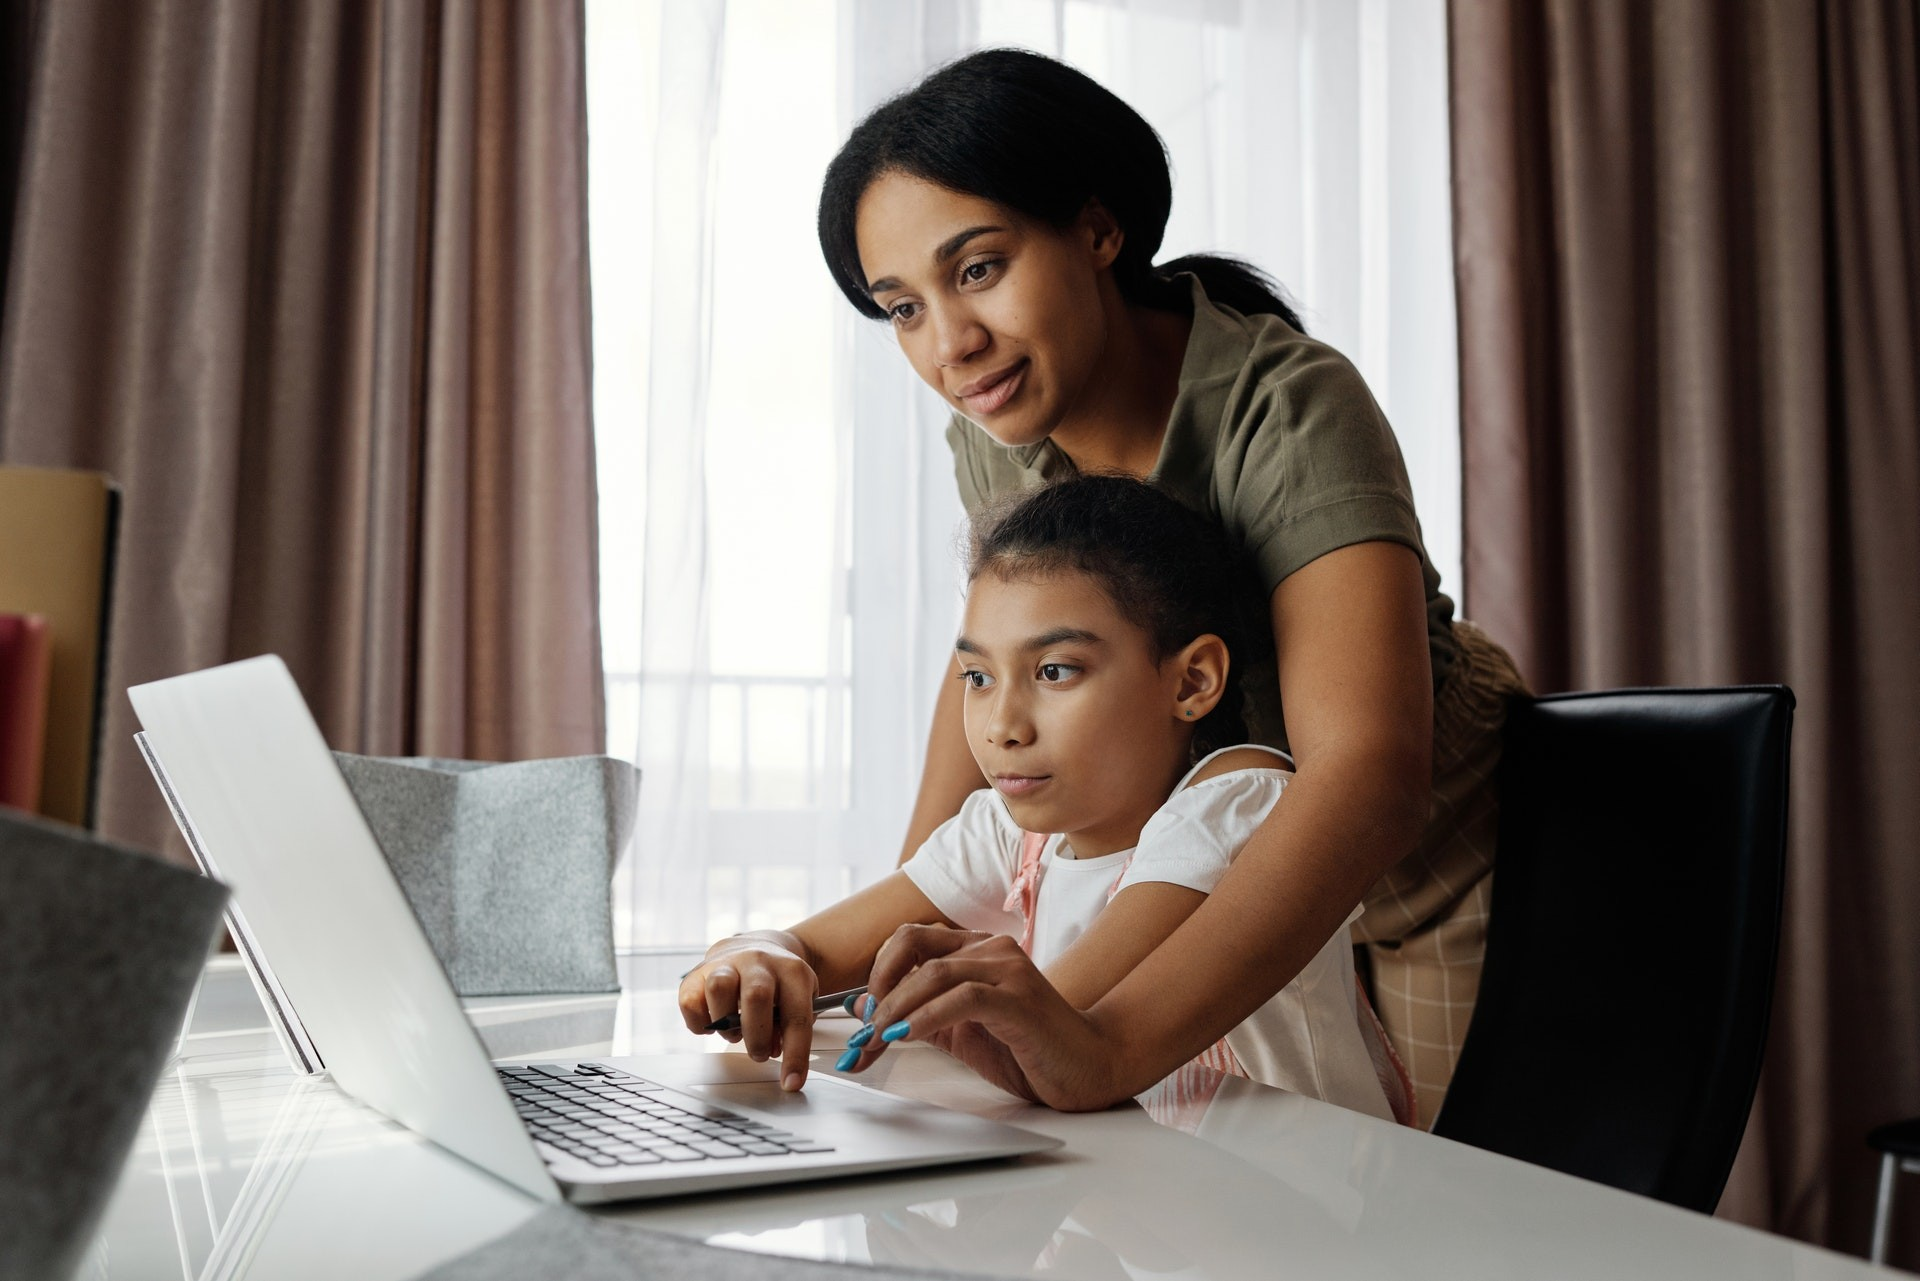 Mother and daughter work together on a computer